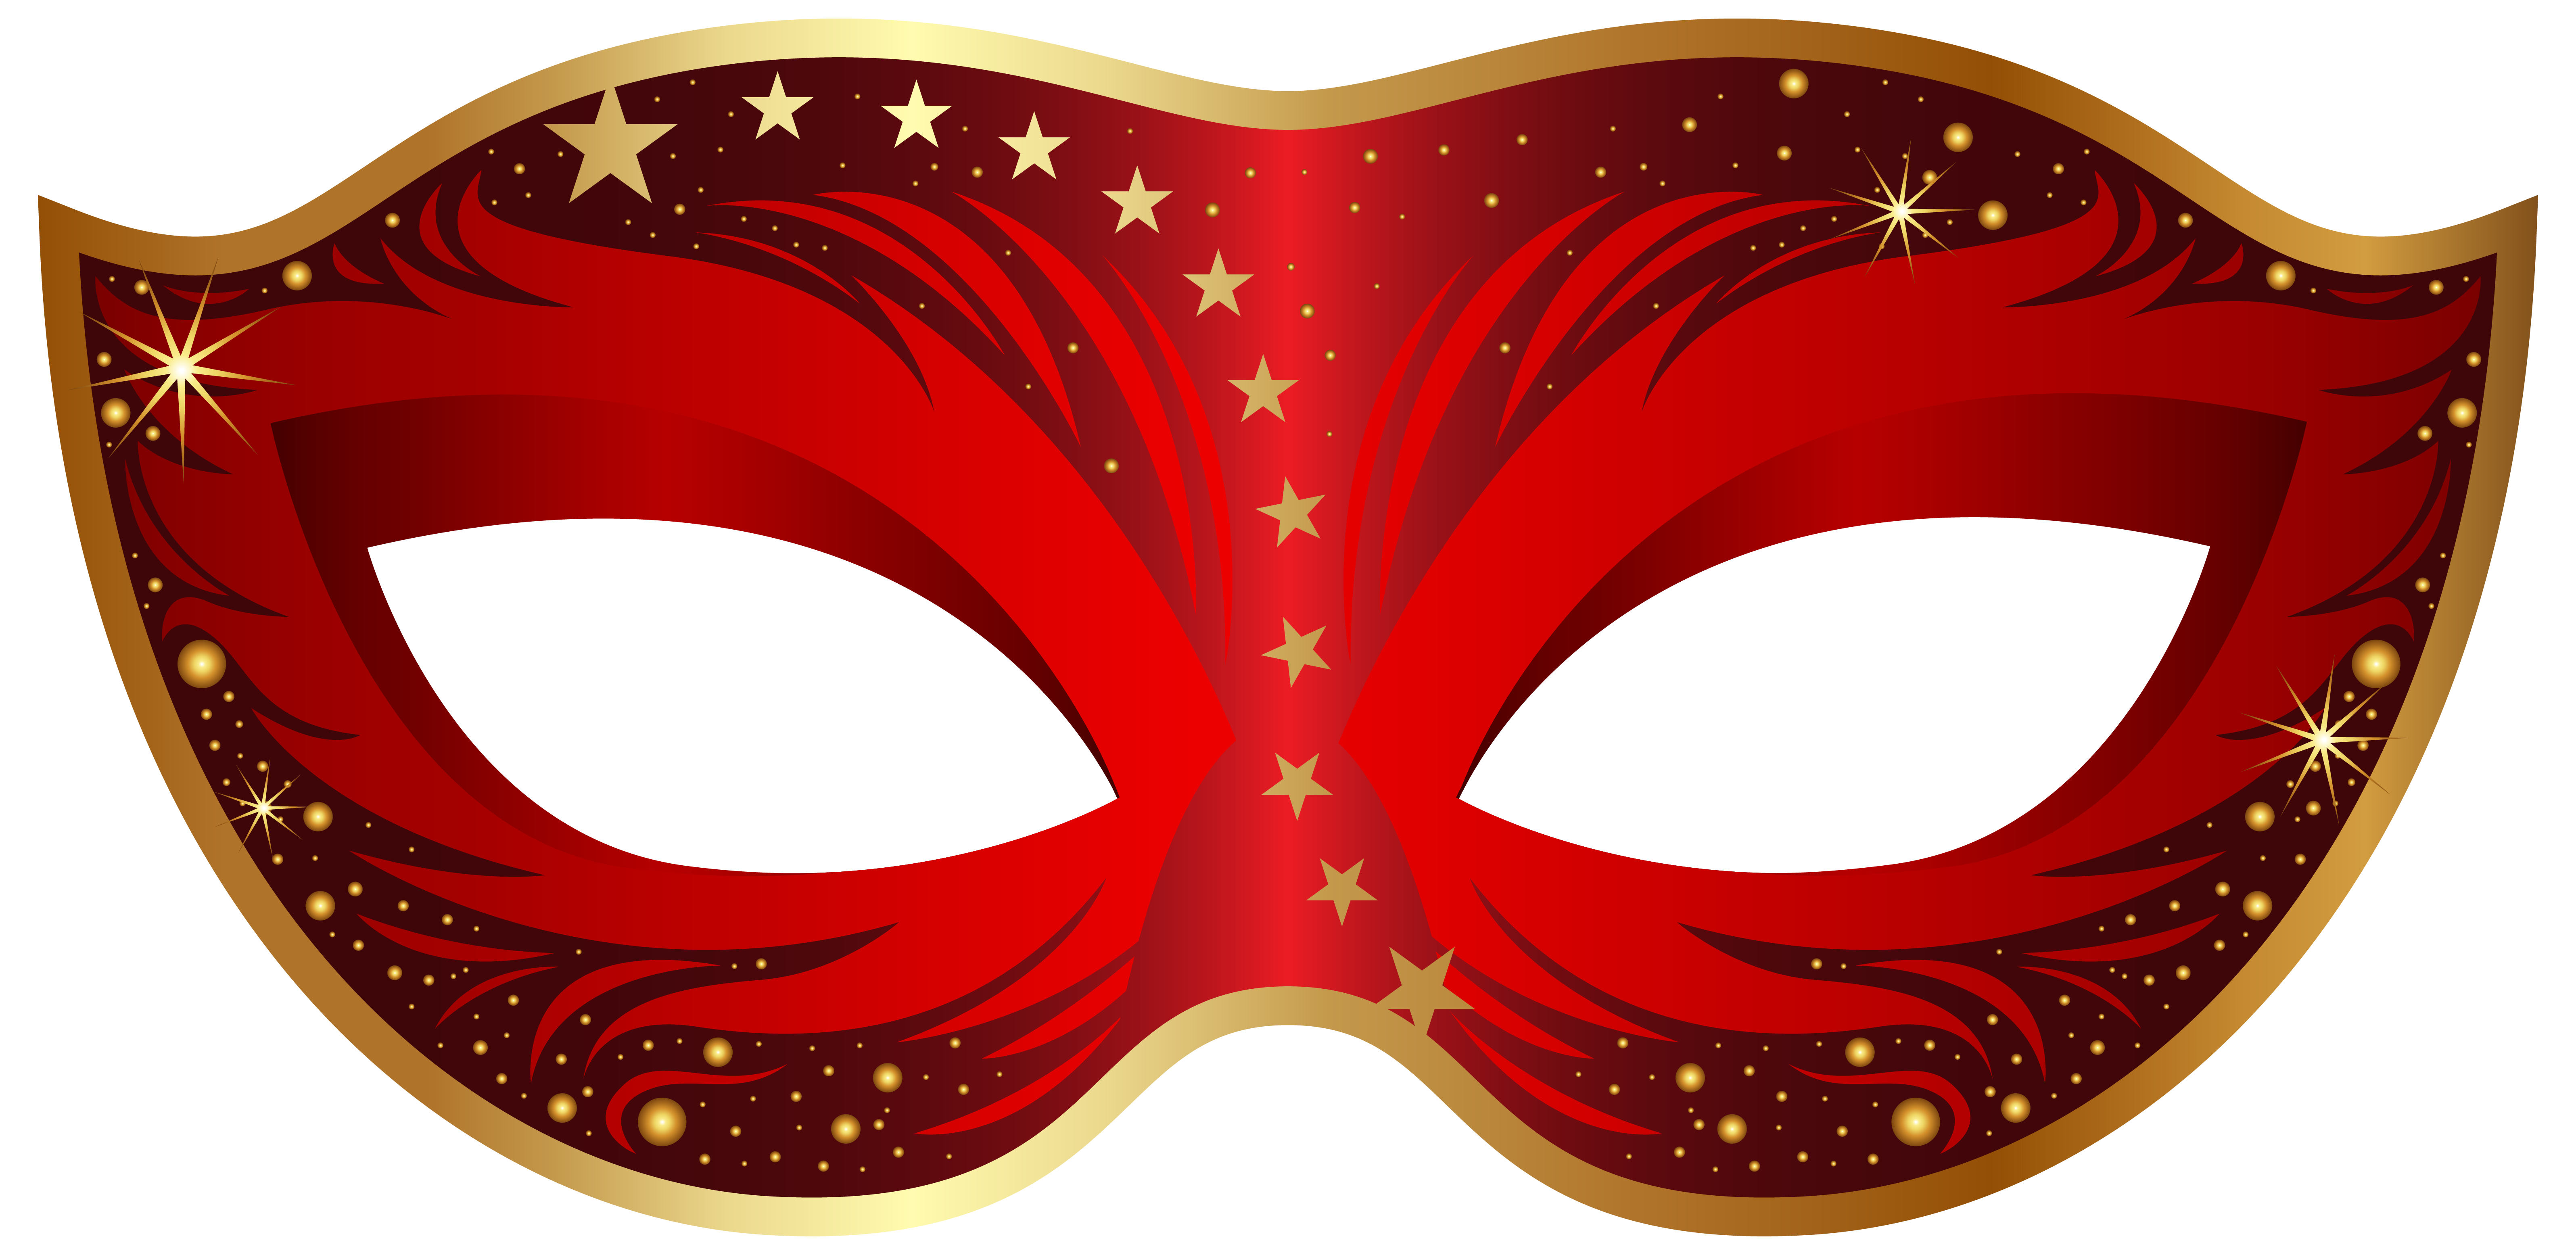 picture free download Red carnival mask png. Masquerade clipart masquerade invitation.